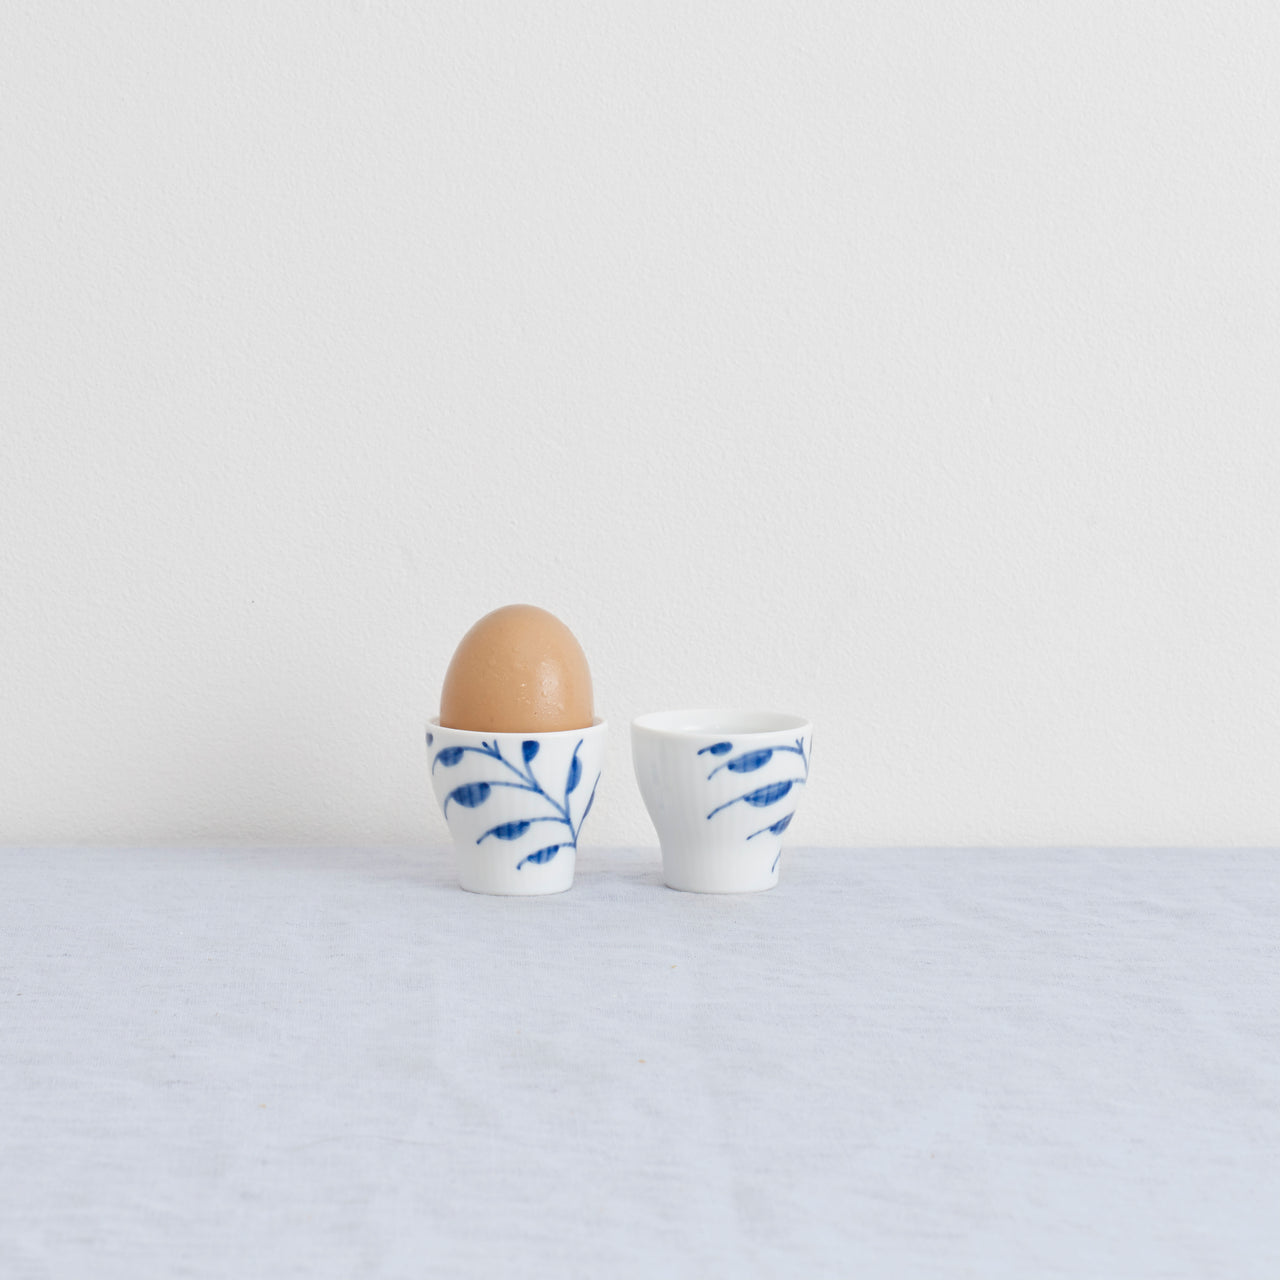 Royal Copenhagen - Blue Fluted Mega - Blue Fluted Egg Cups - Royal Copenhagen Blue Fluted Mega